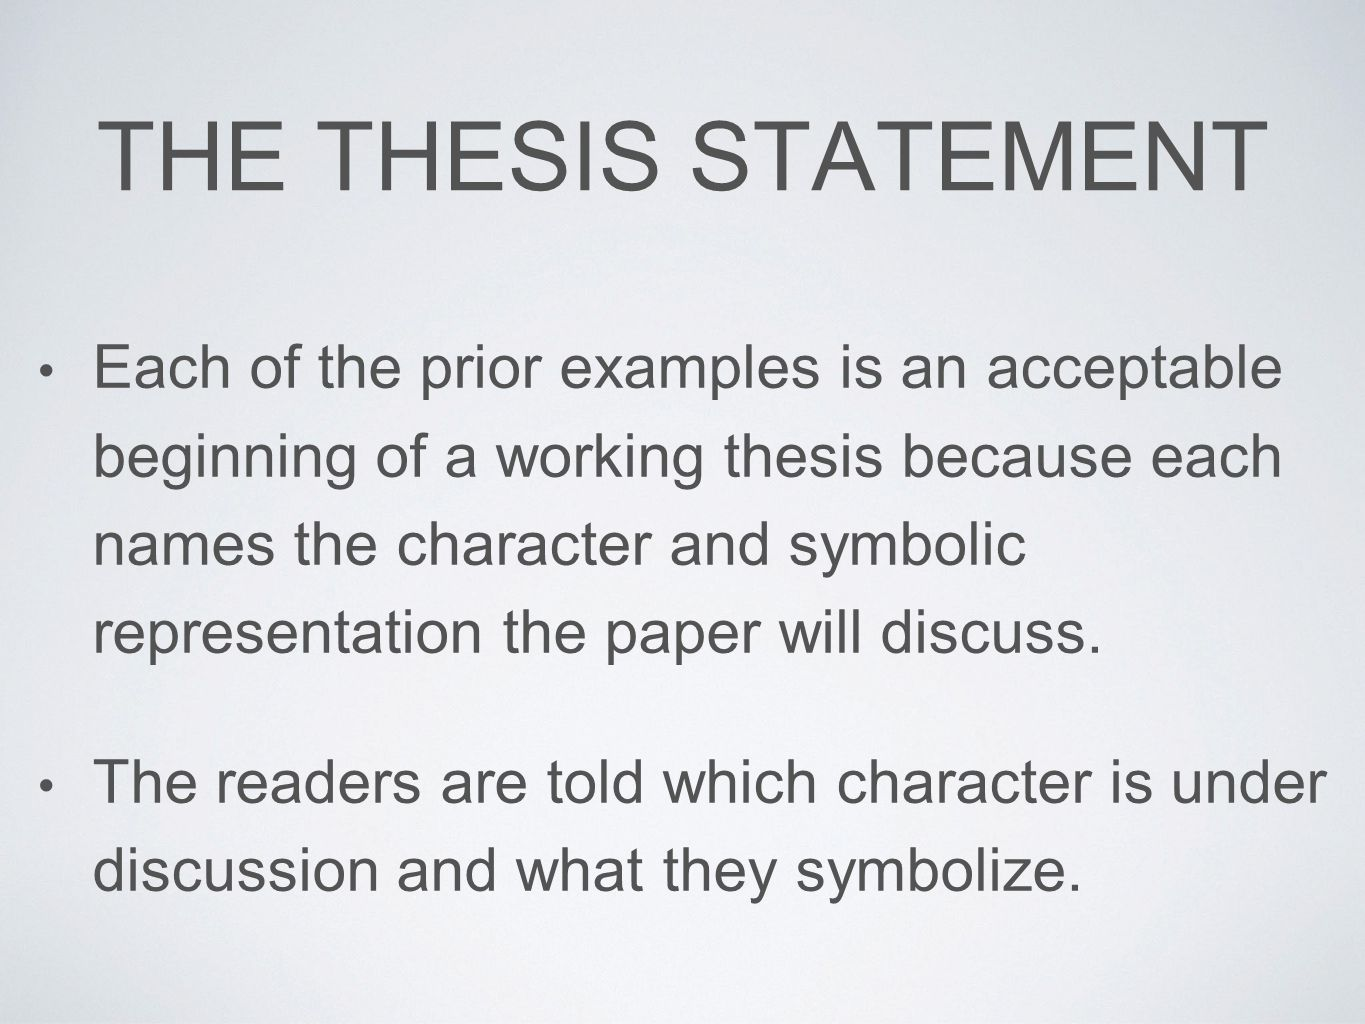 thesis statement discussion paper Get an answer for 'what is a good thesis statement for abortion i just need a complex sentence to get me started although i have thought of some already, they are.